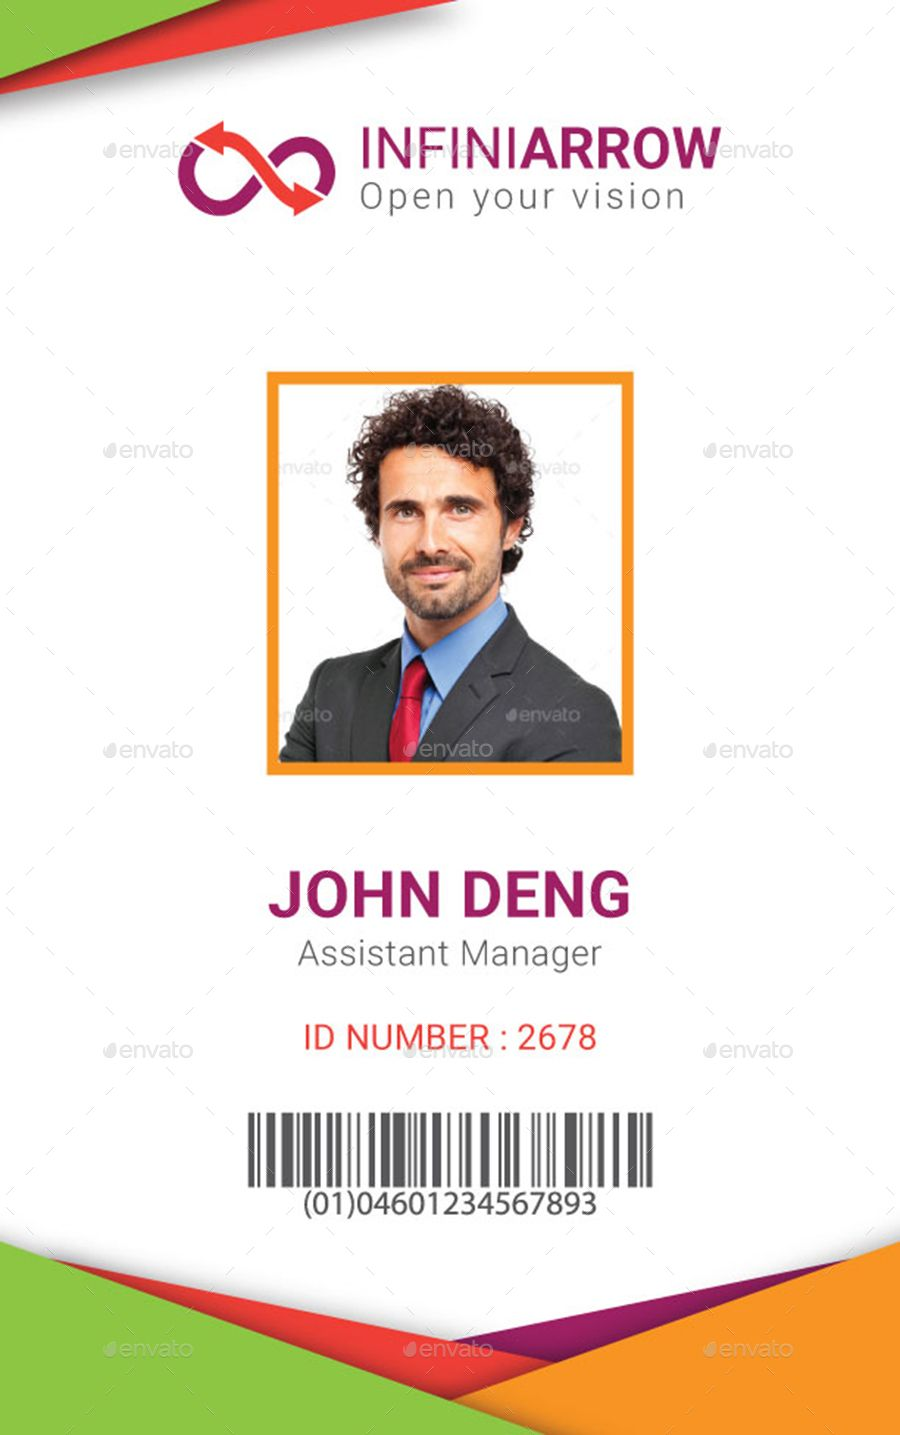 School Id Template Free Download Free Download School Id Card Template Psd School Id Card Template Psd School Id Card Template Employee Id Card Employees Card